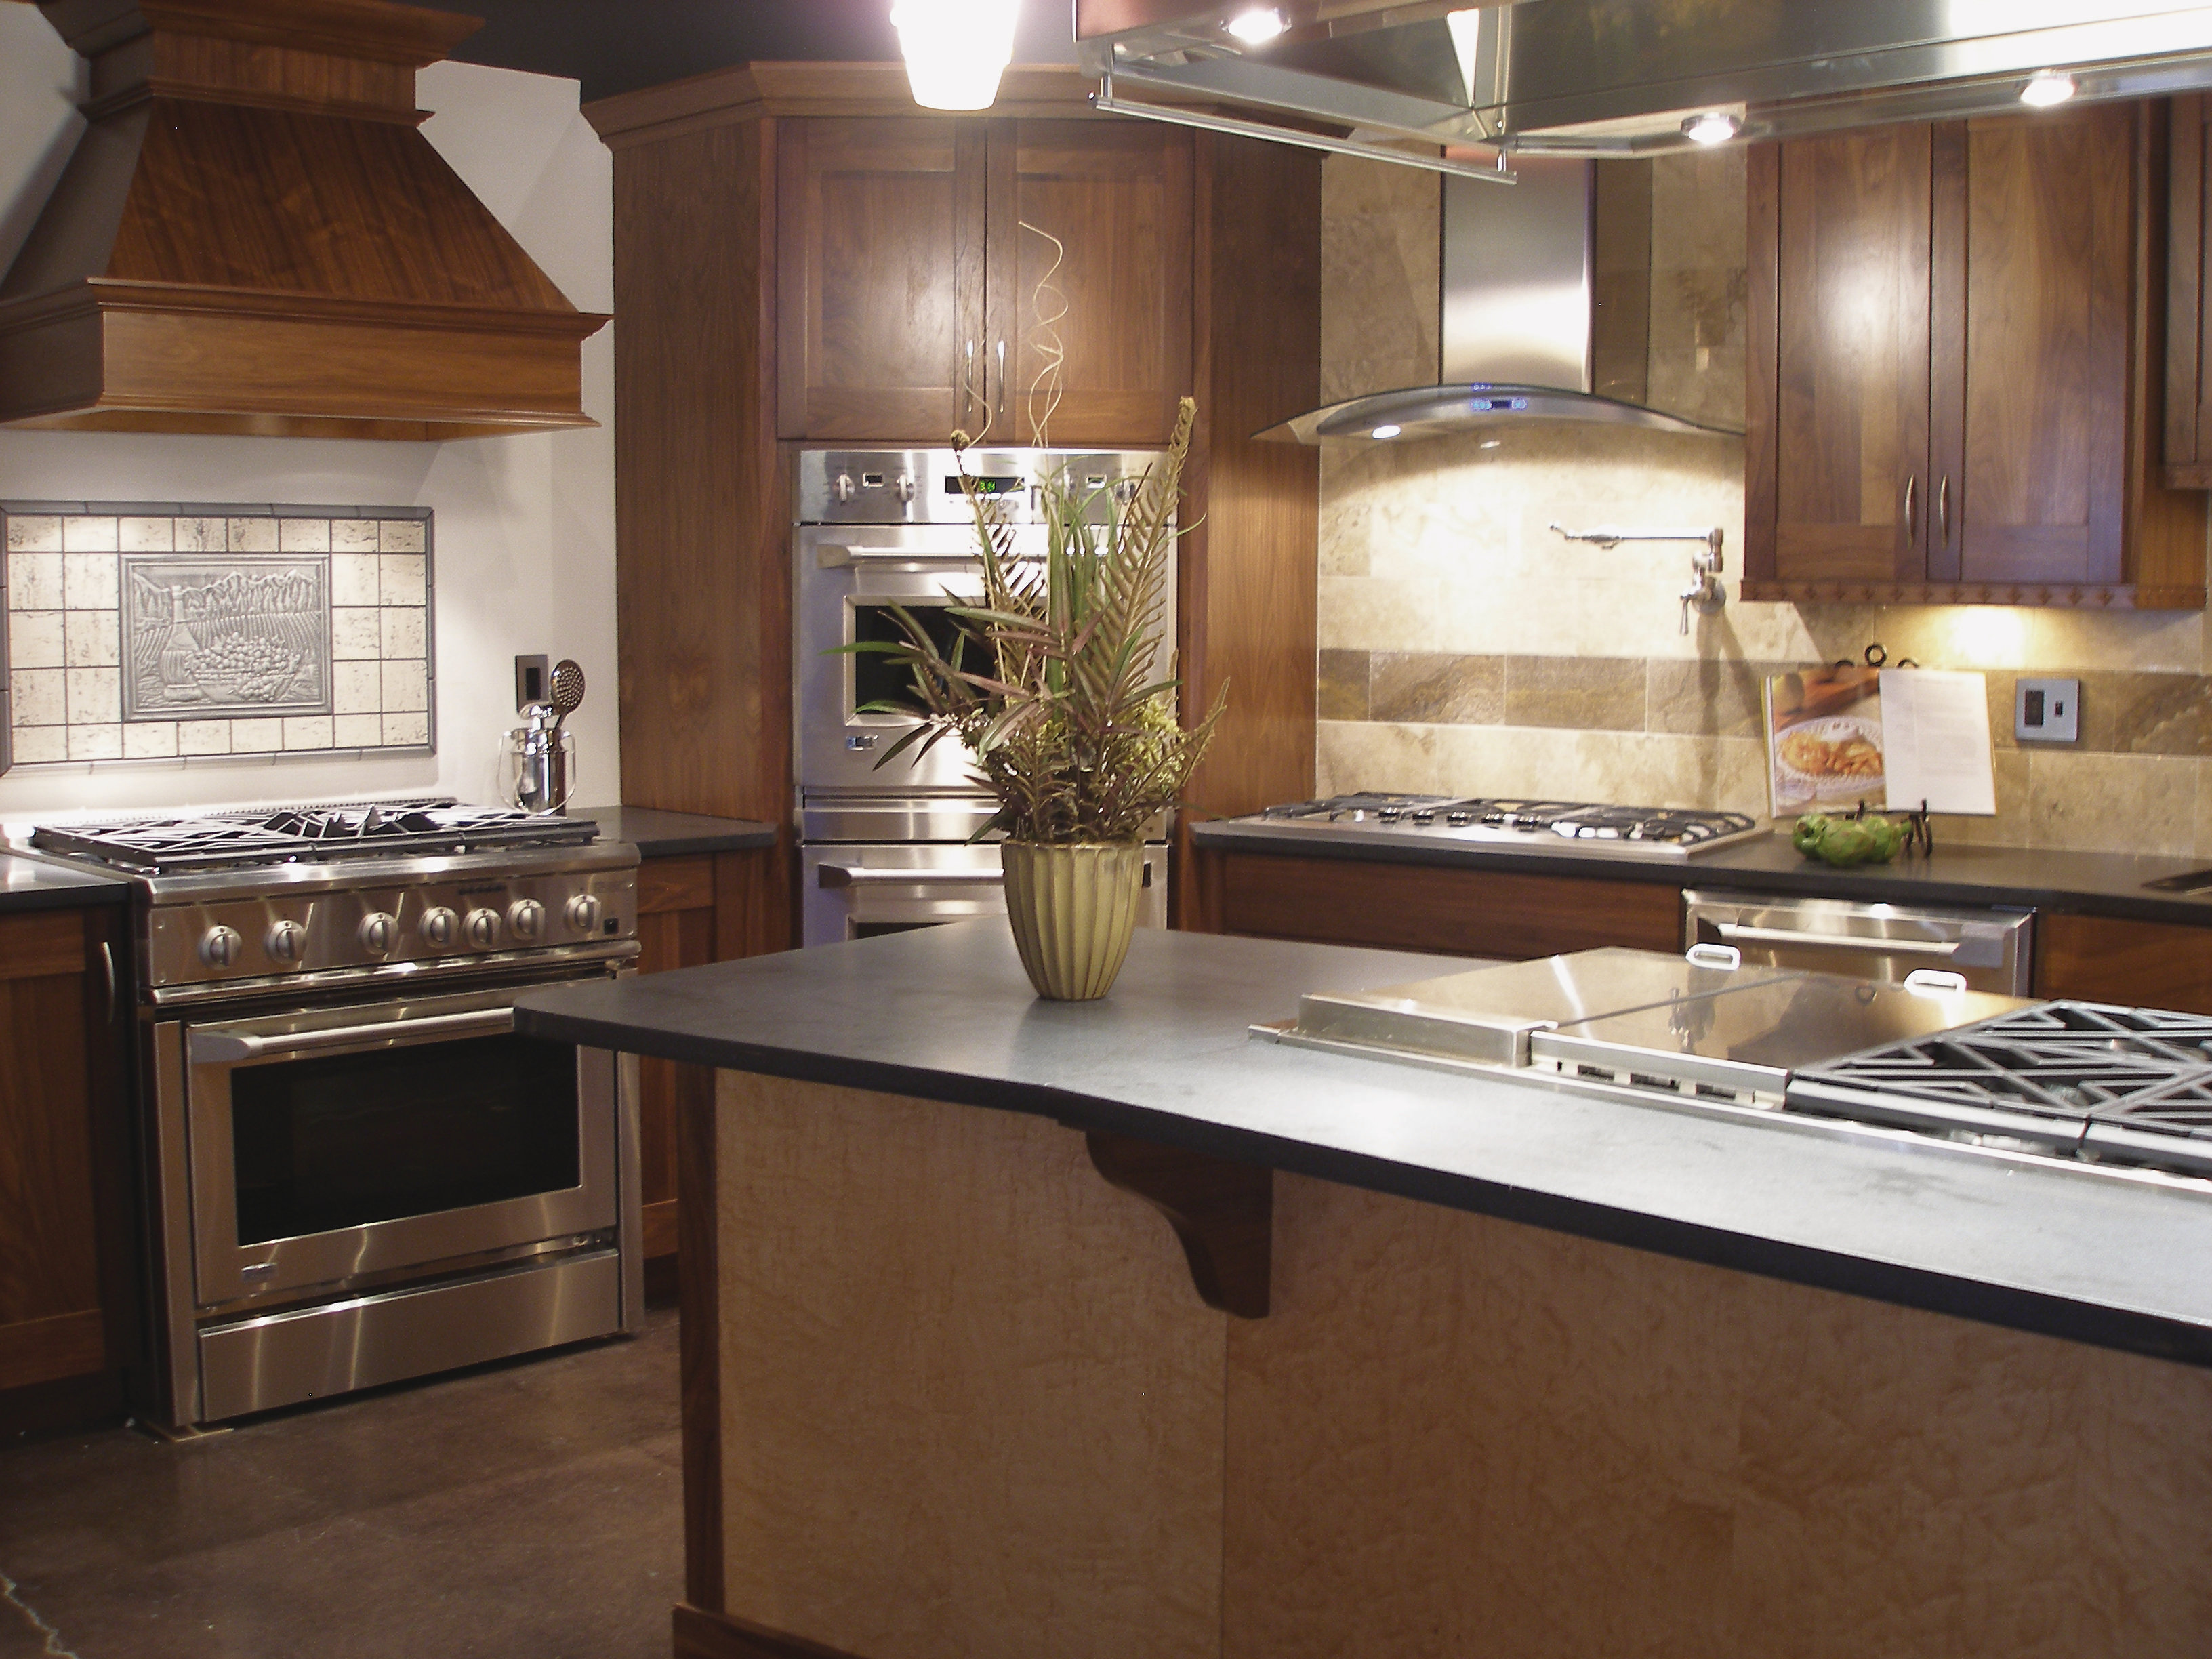 Adelphi birdseye maple veneer remodeling cabinets for Birdseye maple kitchen cabinets